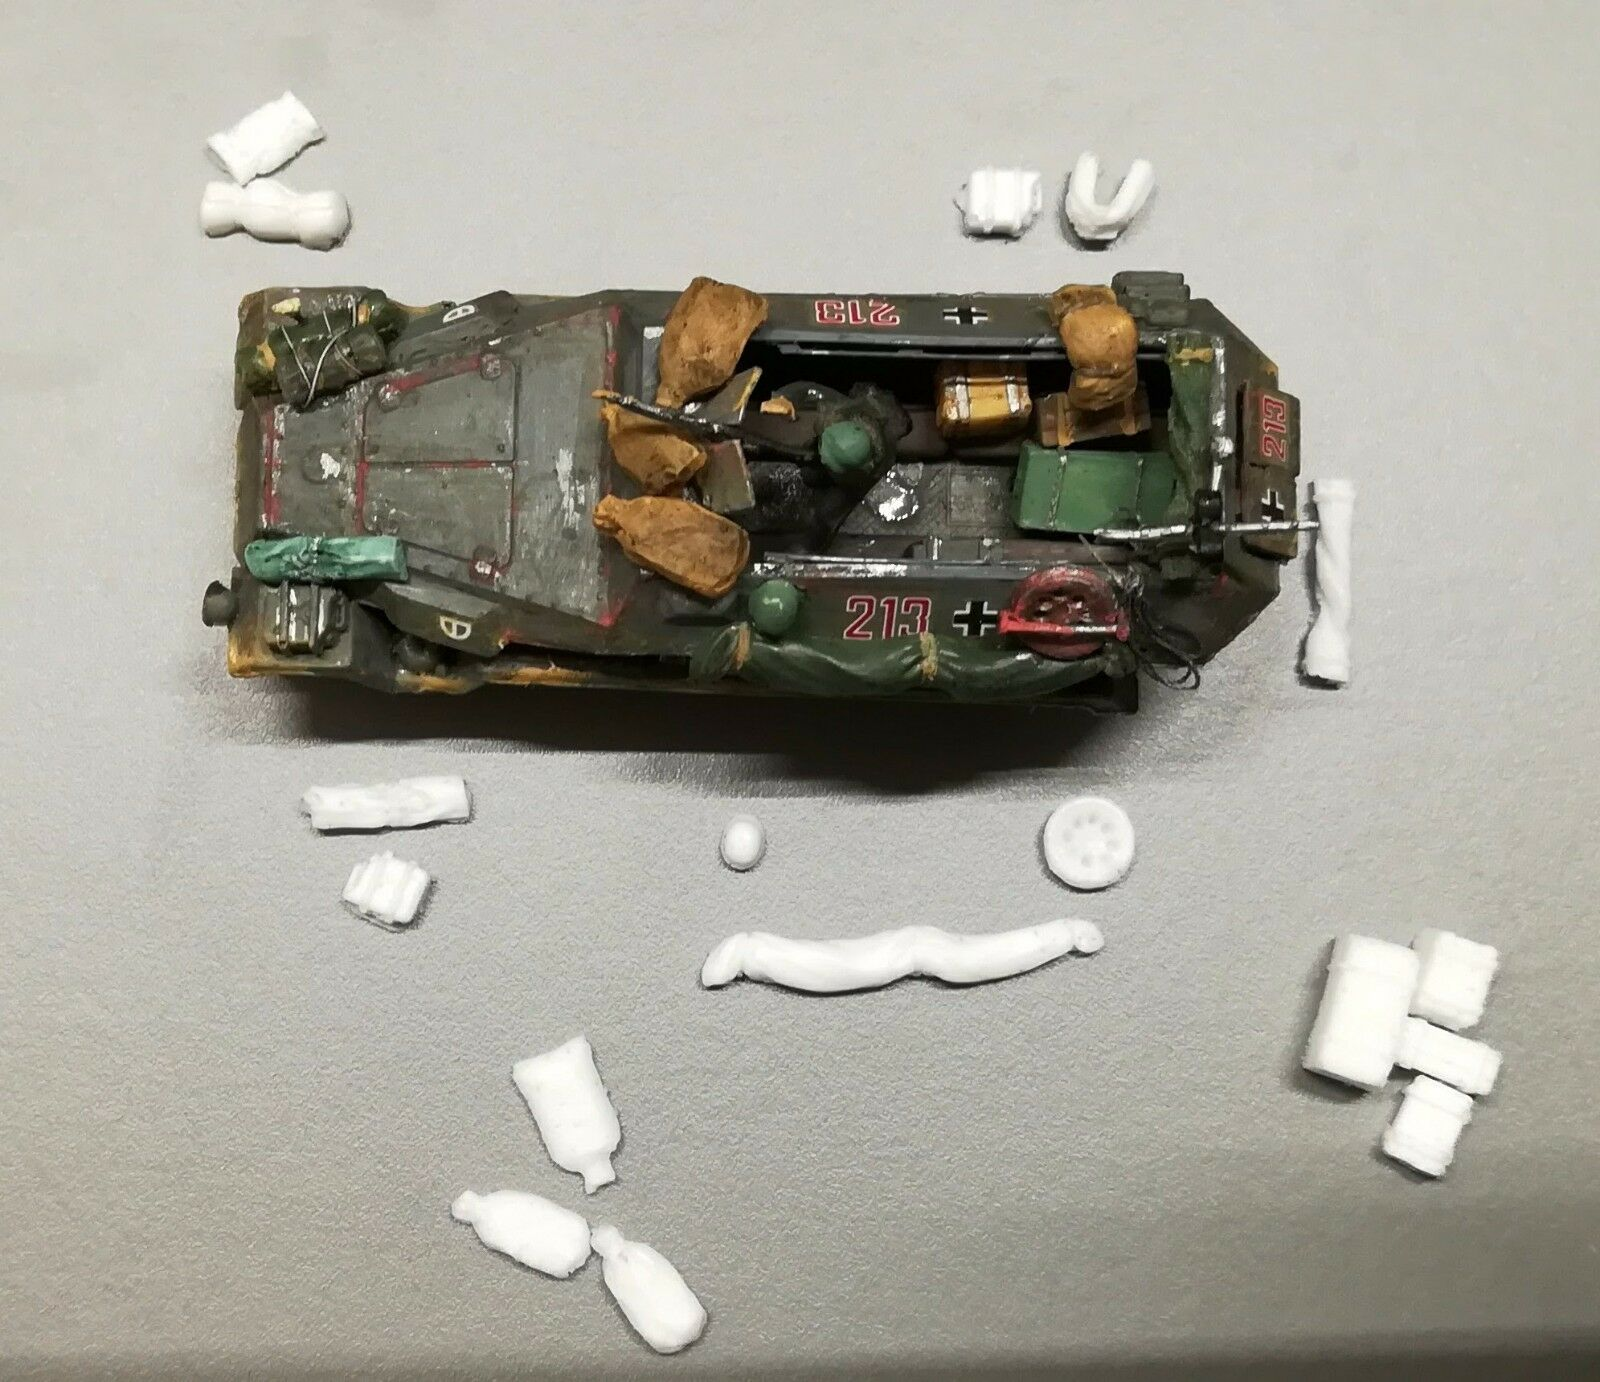 1:72 or 1:76 Sd.Kfz.251 Hanomag Tank Military Scale Model Stowage Kit Accessories - redoguk